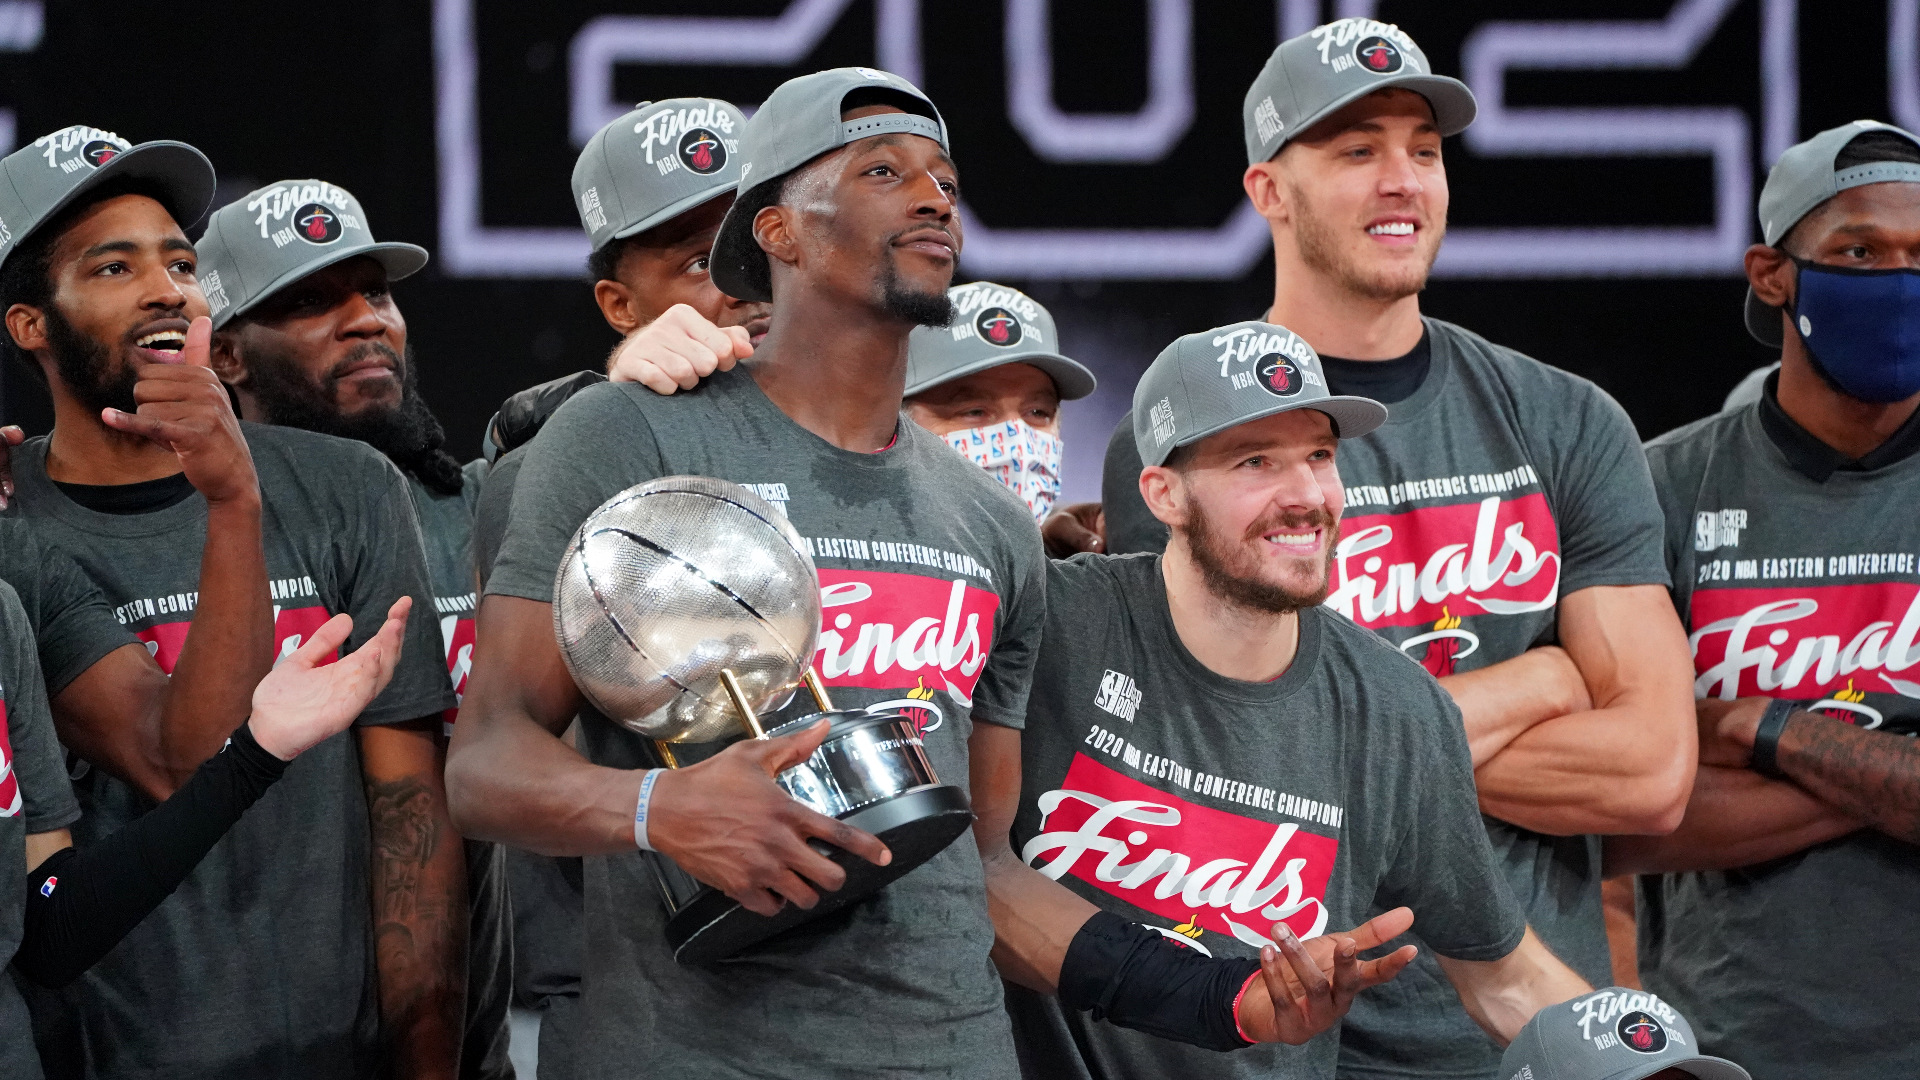 Nba Finals 2020 Are The Miami Heat The Most Unexpected Finalist In The Last 35 Years Nba Com Australia The Official Site Of The Nba